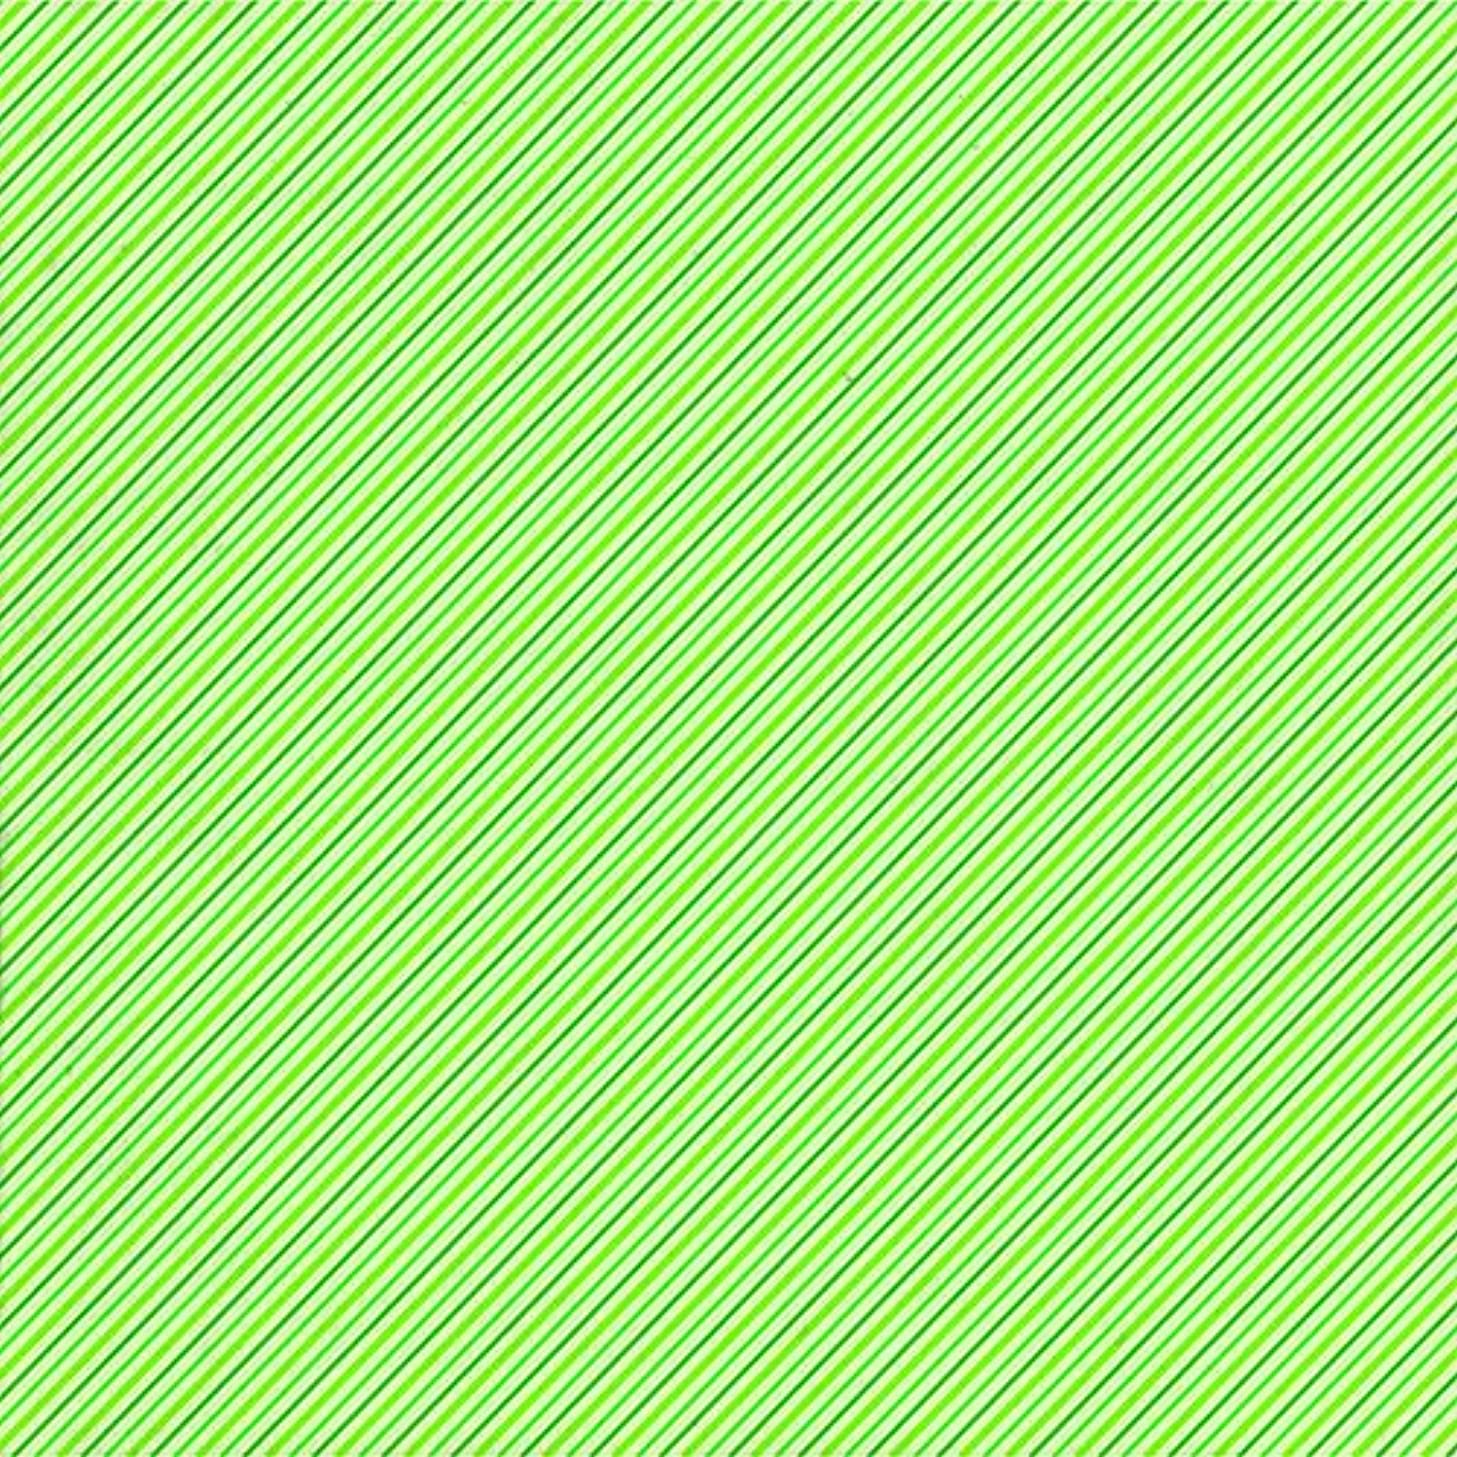 American Crafts 15 12 x 12 Inch St Patrick Stripes Paper Pack by Die Cuts with a View Piece